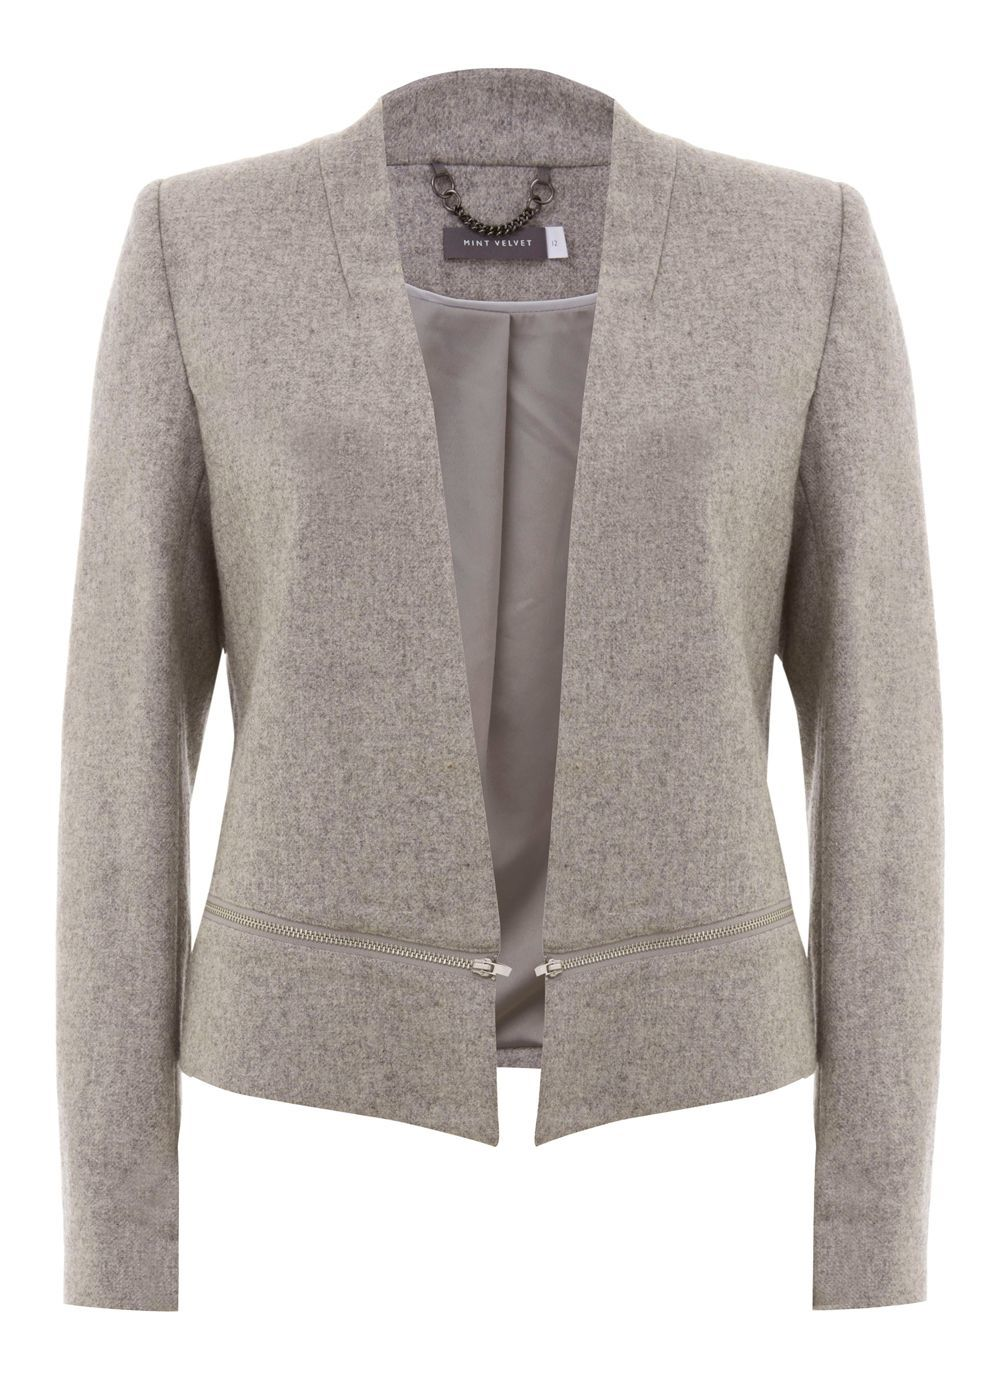 Silver Grey Flannel Crop Tux Jacket, Grey - style: single breasted blazer; collar: round collar/collarless; pattern: herringbone/tweed; predominant colour: stone; occasions: work; length: standard; fit: tailored/fitted; fibres: wool - mix; sleeve length: long sleeve; sleeve style: standard; collar break: low/open; pattern type: fabric; pattern size: light/subtle; texture group: woven light midweight; season: s/s 2016; wardrobe: investment